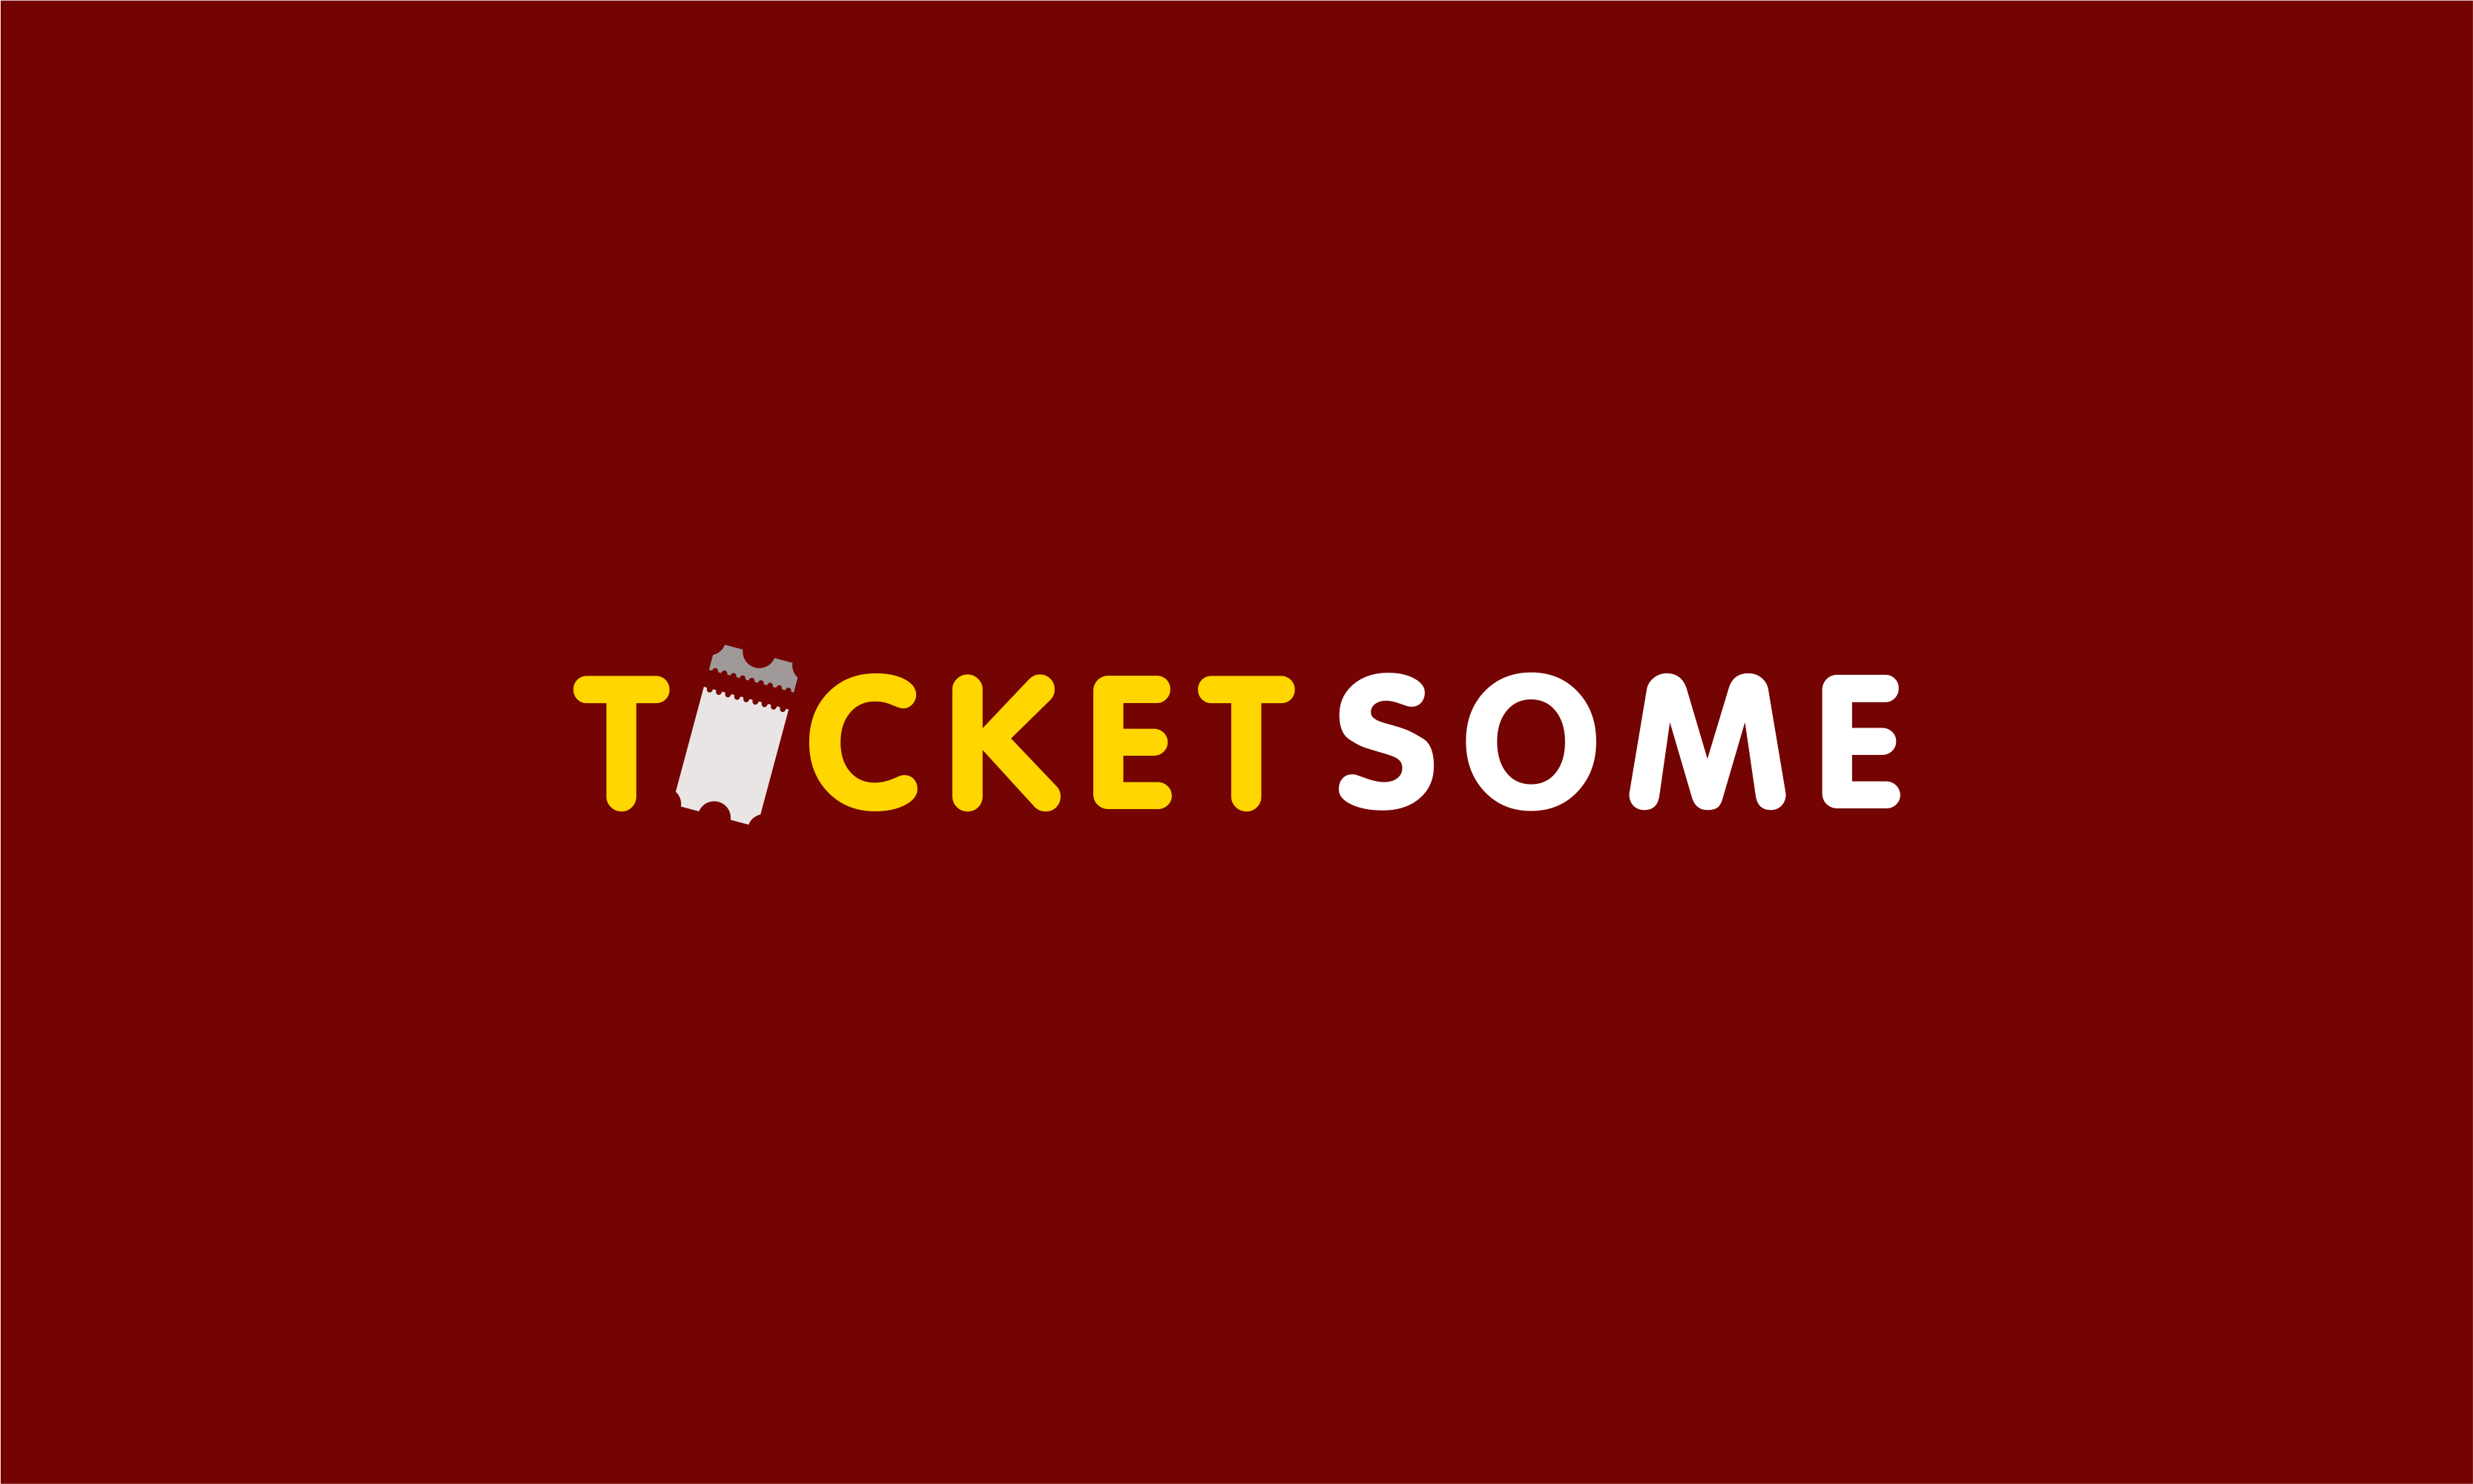 ticketsome logo